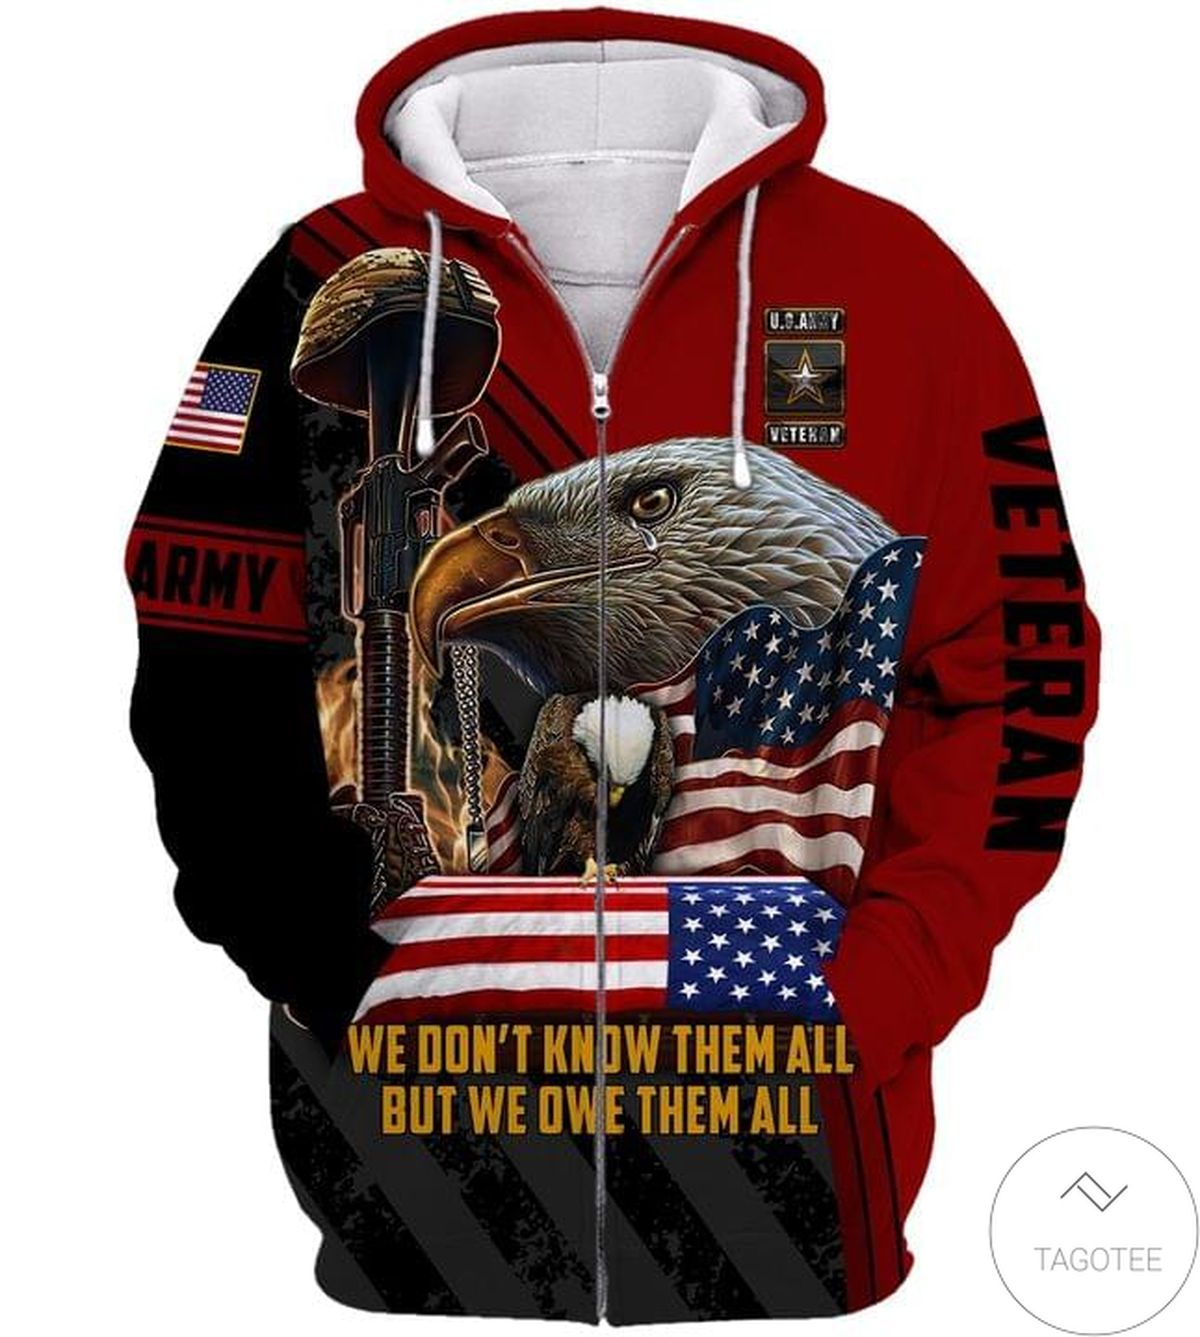 We Don't Know Them All But We Owe Them All Veteran Zip Hoodie